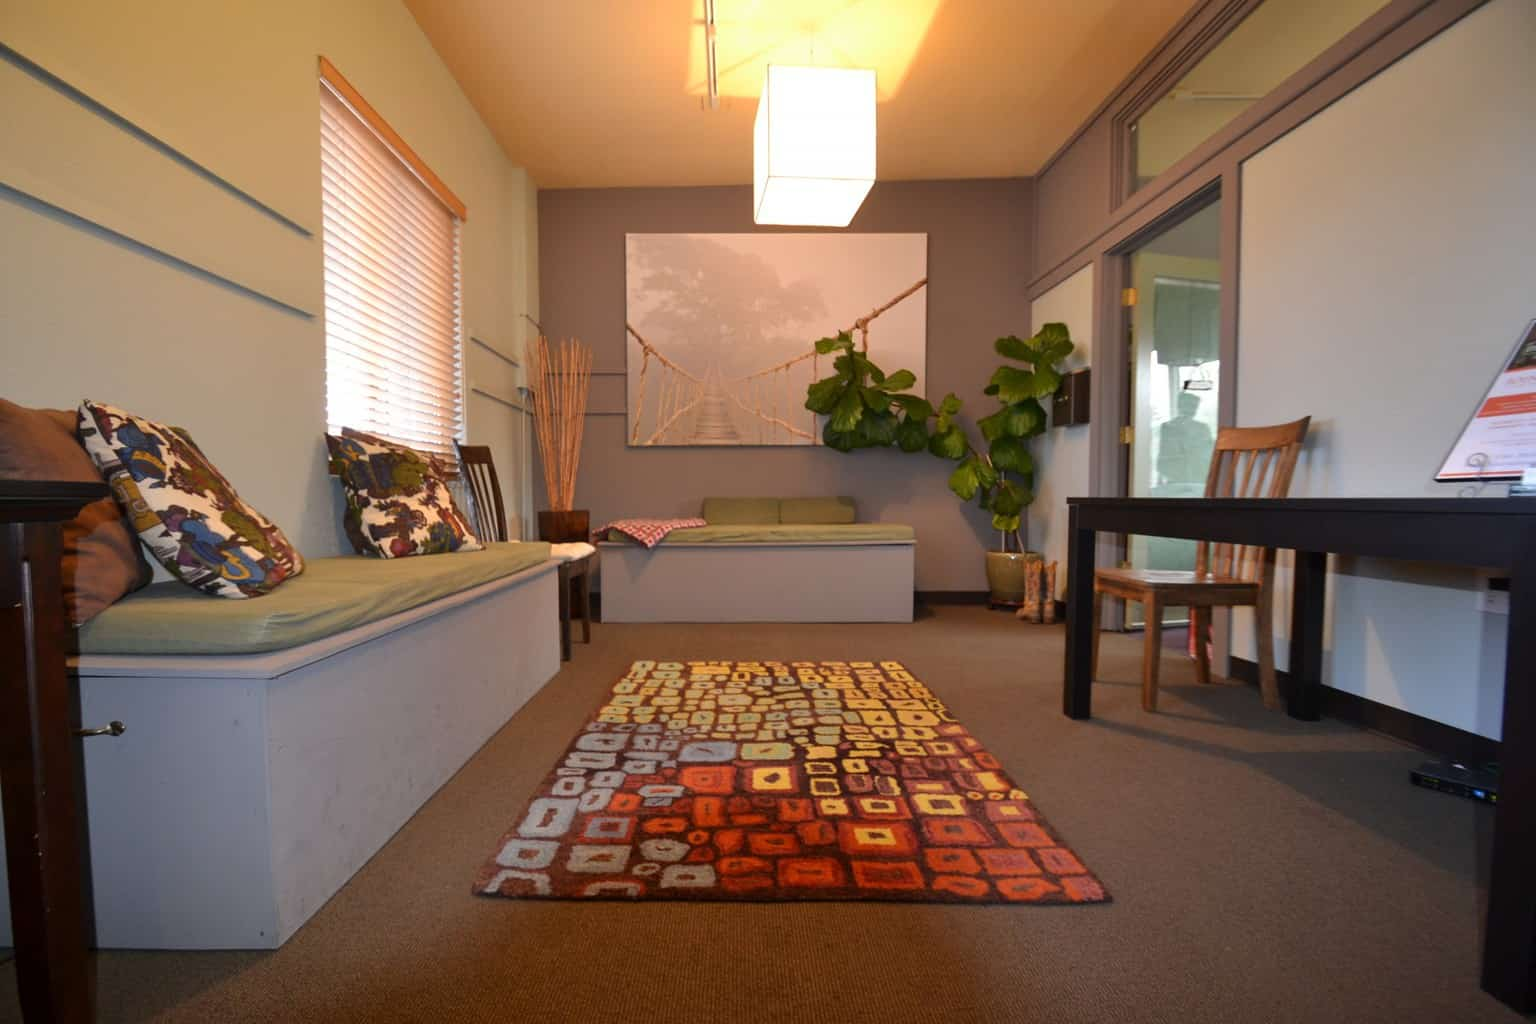 Holobeing, Boulder wellness center, therapist in Boulder, massage therapists in Boulder, acupuncture Boulder, healing, empowerment, business advice for therapists, abortion counseling, mindfulness, energy healing, Reiki, workshops in Boulder, events in Boulder, metaphysical, spiritual centers in Boulder, depression, anxiety, gay, lesbian, gender, relationship, couples counseling in Denver, I need help, how to find a therapist, how to pick a therapist, postpartum depression, sadness, how to deal with sadness, how to deal with problems at home, I don't feel right, I feel like giving up, I can't figure out what's wrong with me, I feel worthless, health, healthy, balance, healthy recipes, yoga, pilates, yoga videos, pilates videos, guided meditation audio, natural parenting, eco friendly cleaners Boulder, eco friendly daycare Boulder, day hikes in Boulder, climbing in Boulder, mindfulness, wellness, pain relief, rolfing, hypnosis, HoloBeing, HoloPreneur, HoloLive, fascia, tension headaches, hip pain, knee pain, restless legs, brachial plexus, carpal tunnel, shin splints, calf pain, neck pain, lower back pain, upper back pain, rotated pelvis, Kundalini yoga, Thai yoga, third eye, Chinese medicine, pregnancy, postpartum, fertility, astrology, wealth, money counseling, business coaching, empowerment, environment, sustainability, ayurveda, ayurvedic arts, lomilomi, nutrition, organic, therapy, meditation